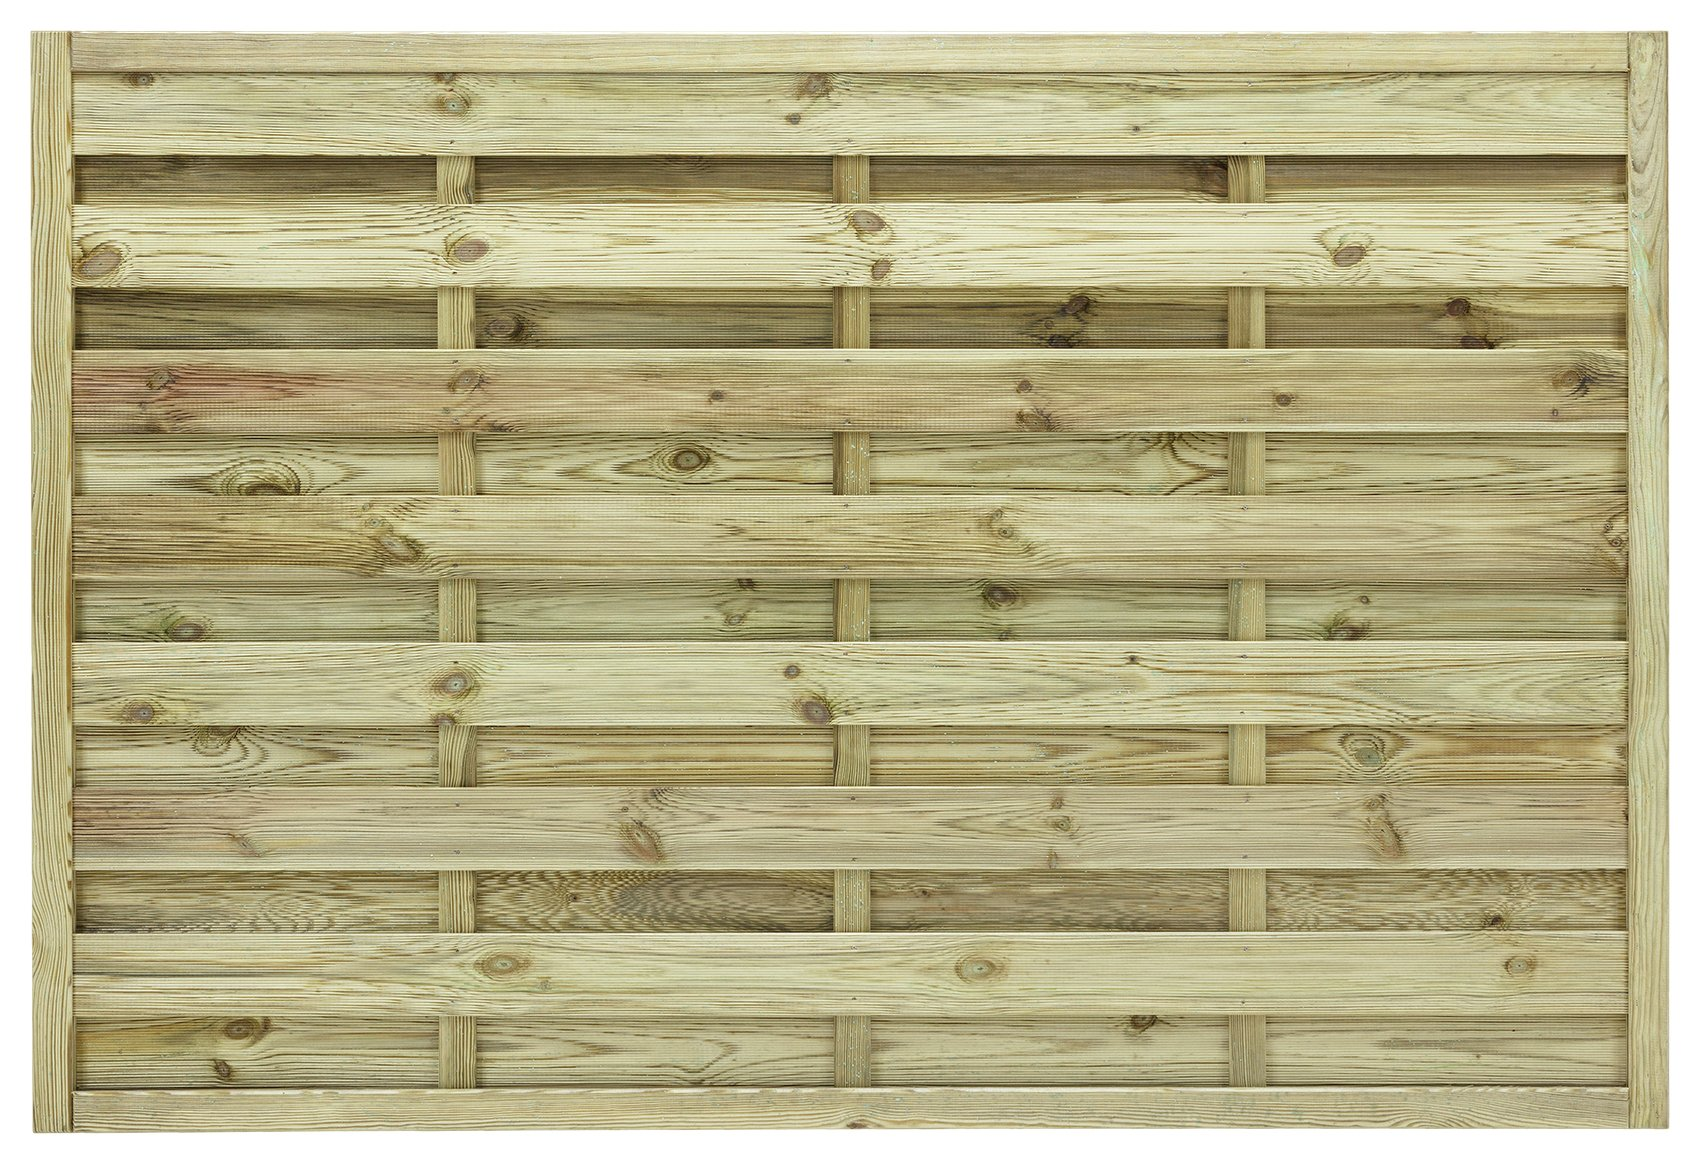 Image of Grange 1.2m St Espirit Square Fence Panel - Pack of 3.